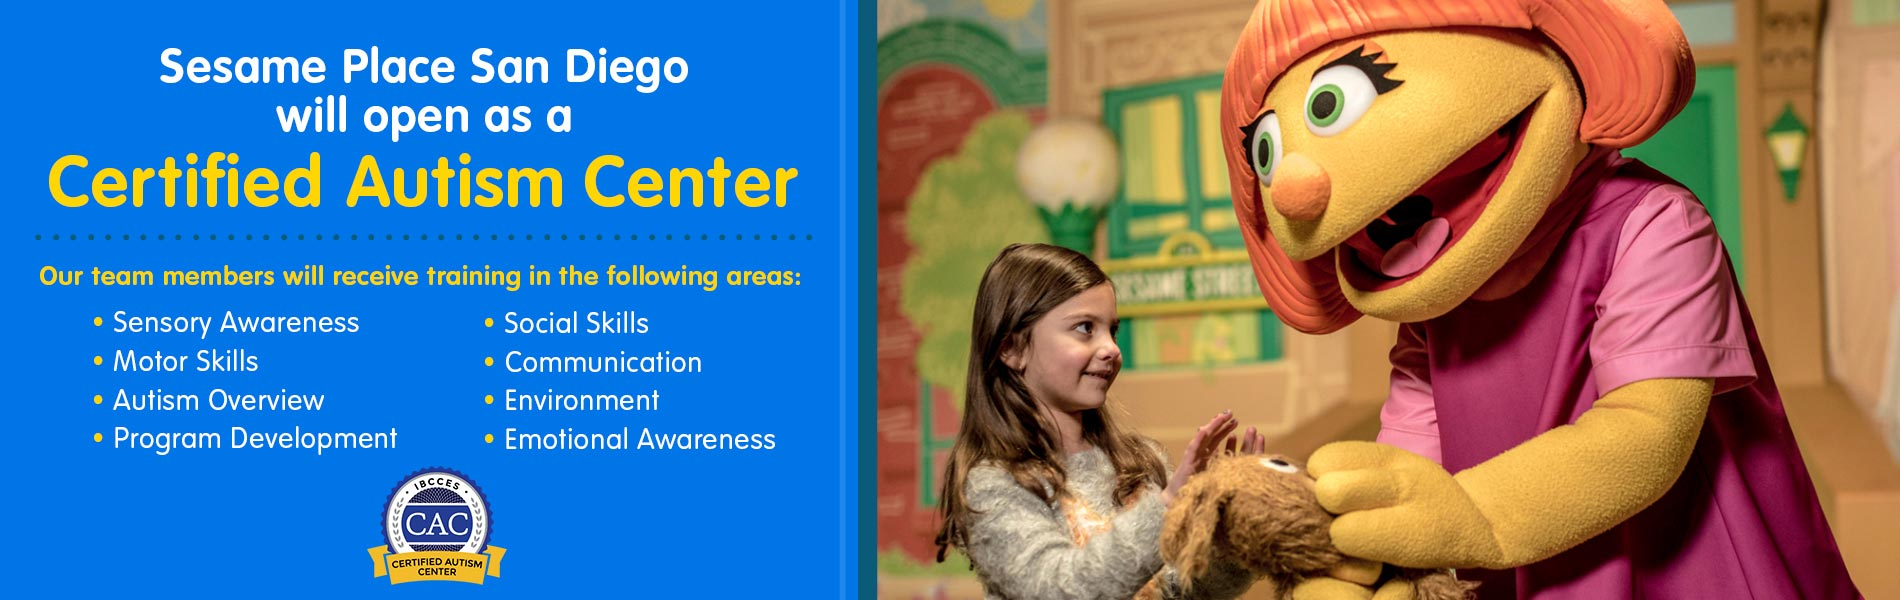 Find a job at Sesame Place® San Diego!